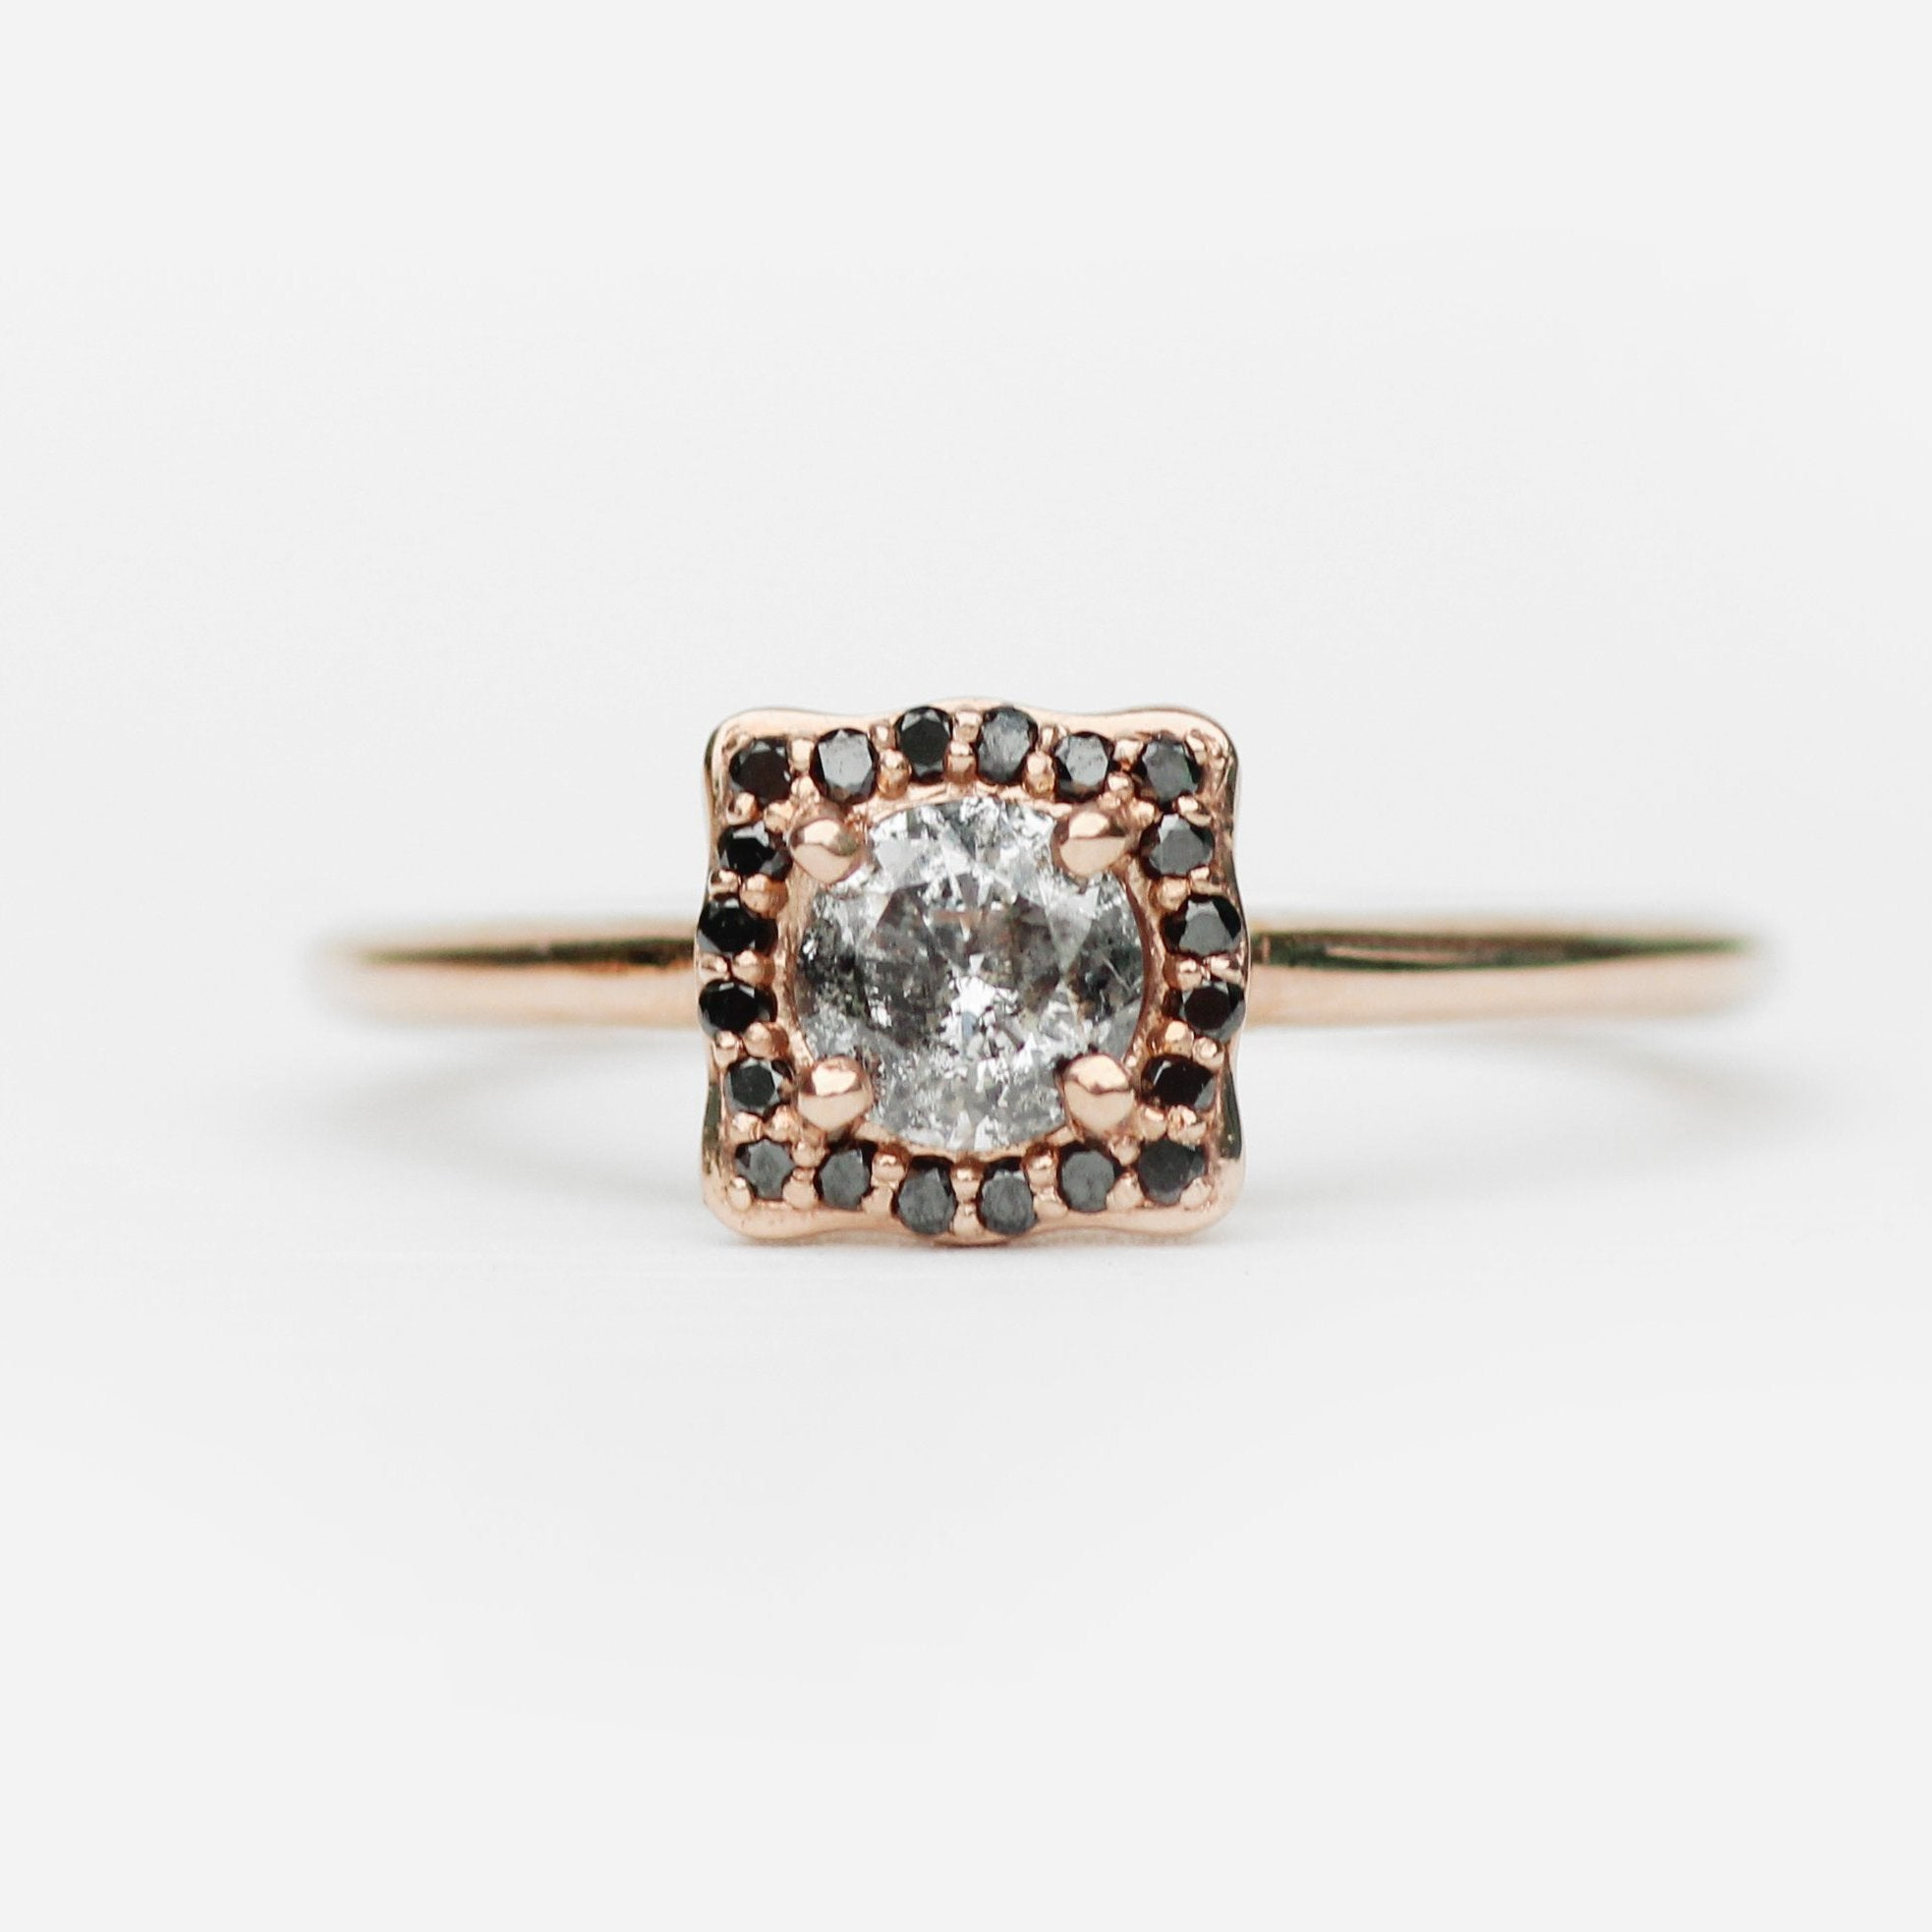 Hannah - Black diamond halo with dark gray celestial diamond - 10k rose gold - Ready to size and ship - Celestial Diamonds ® by Midwinter Co.